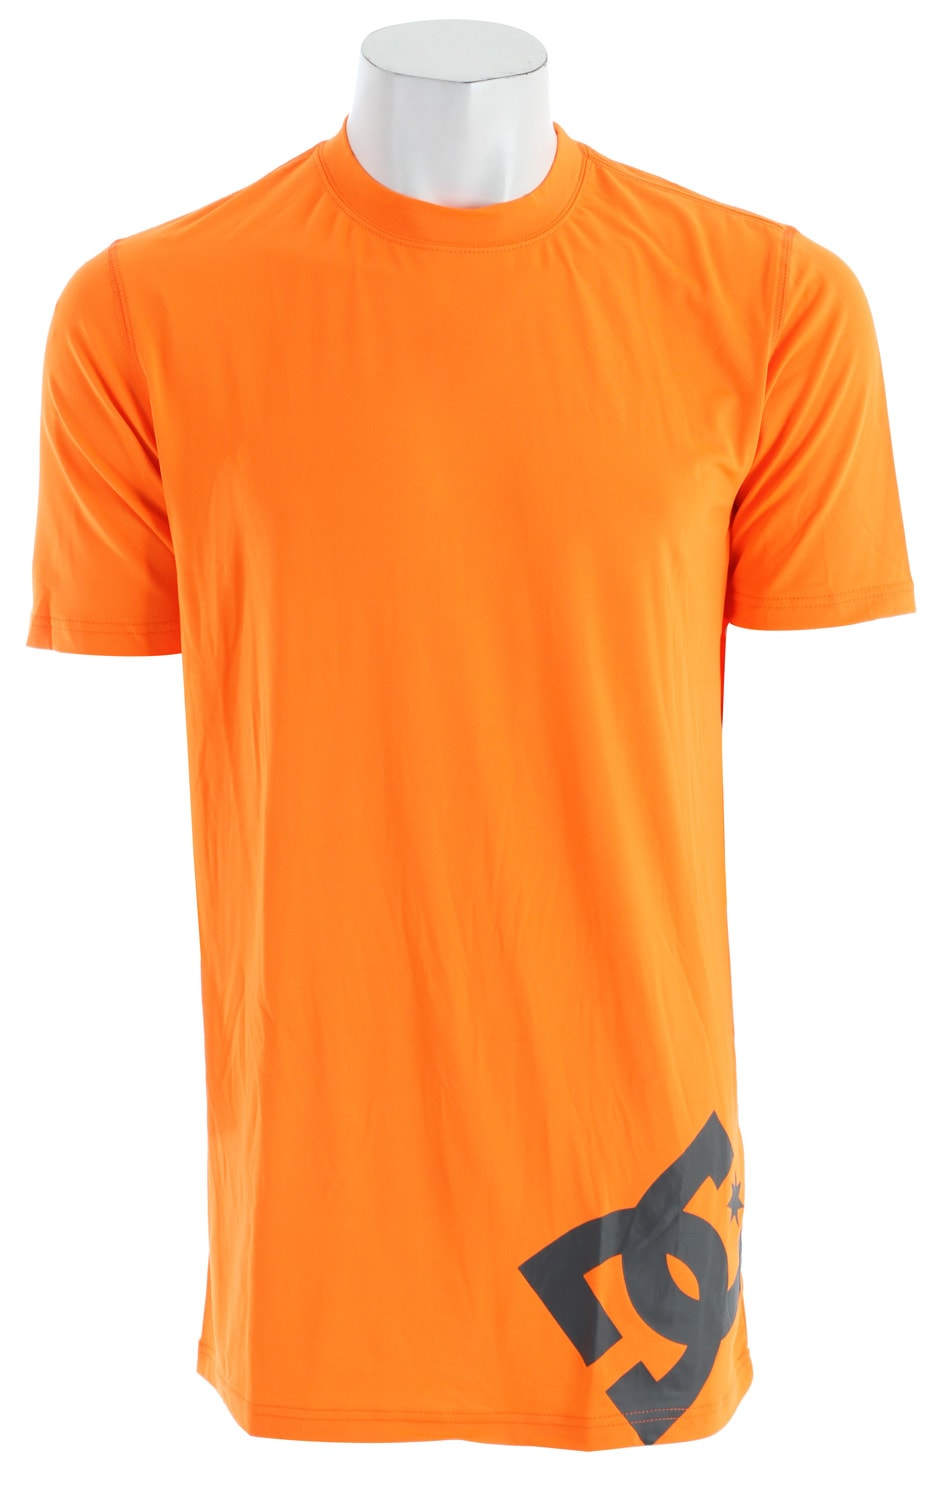 Shop for DC Aravis Baselayer Top Hazard - Men's